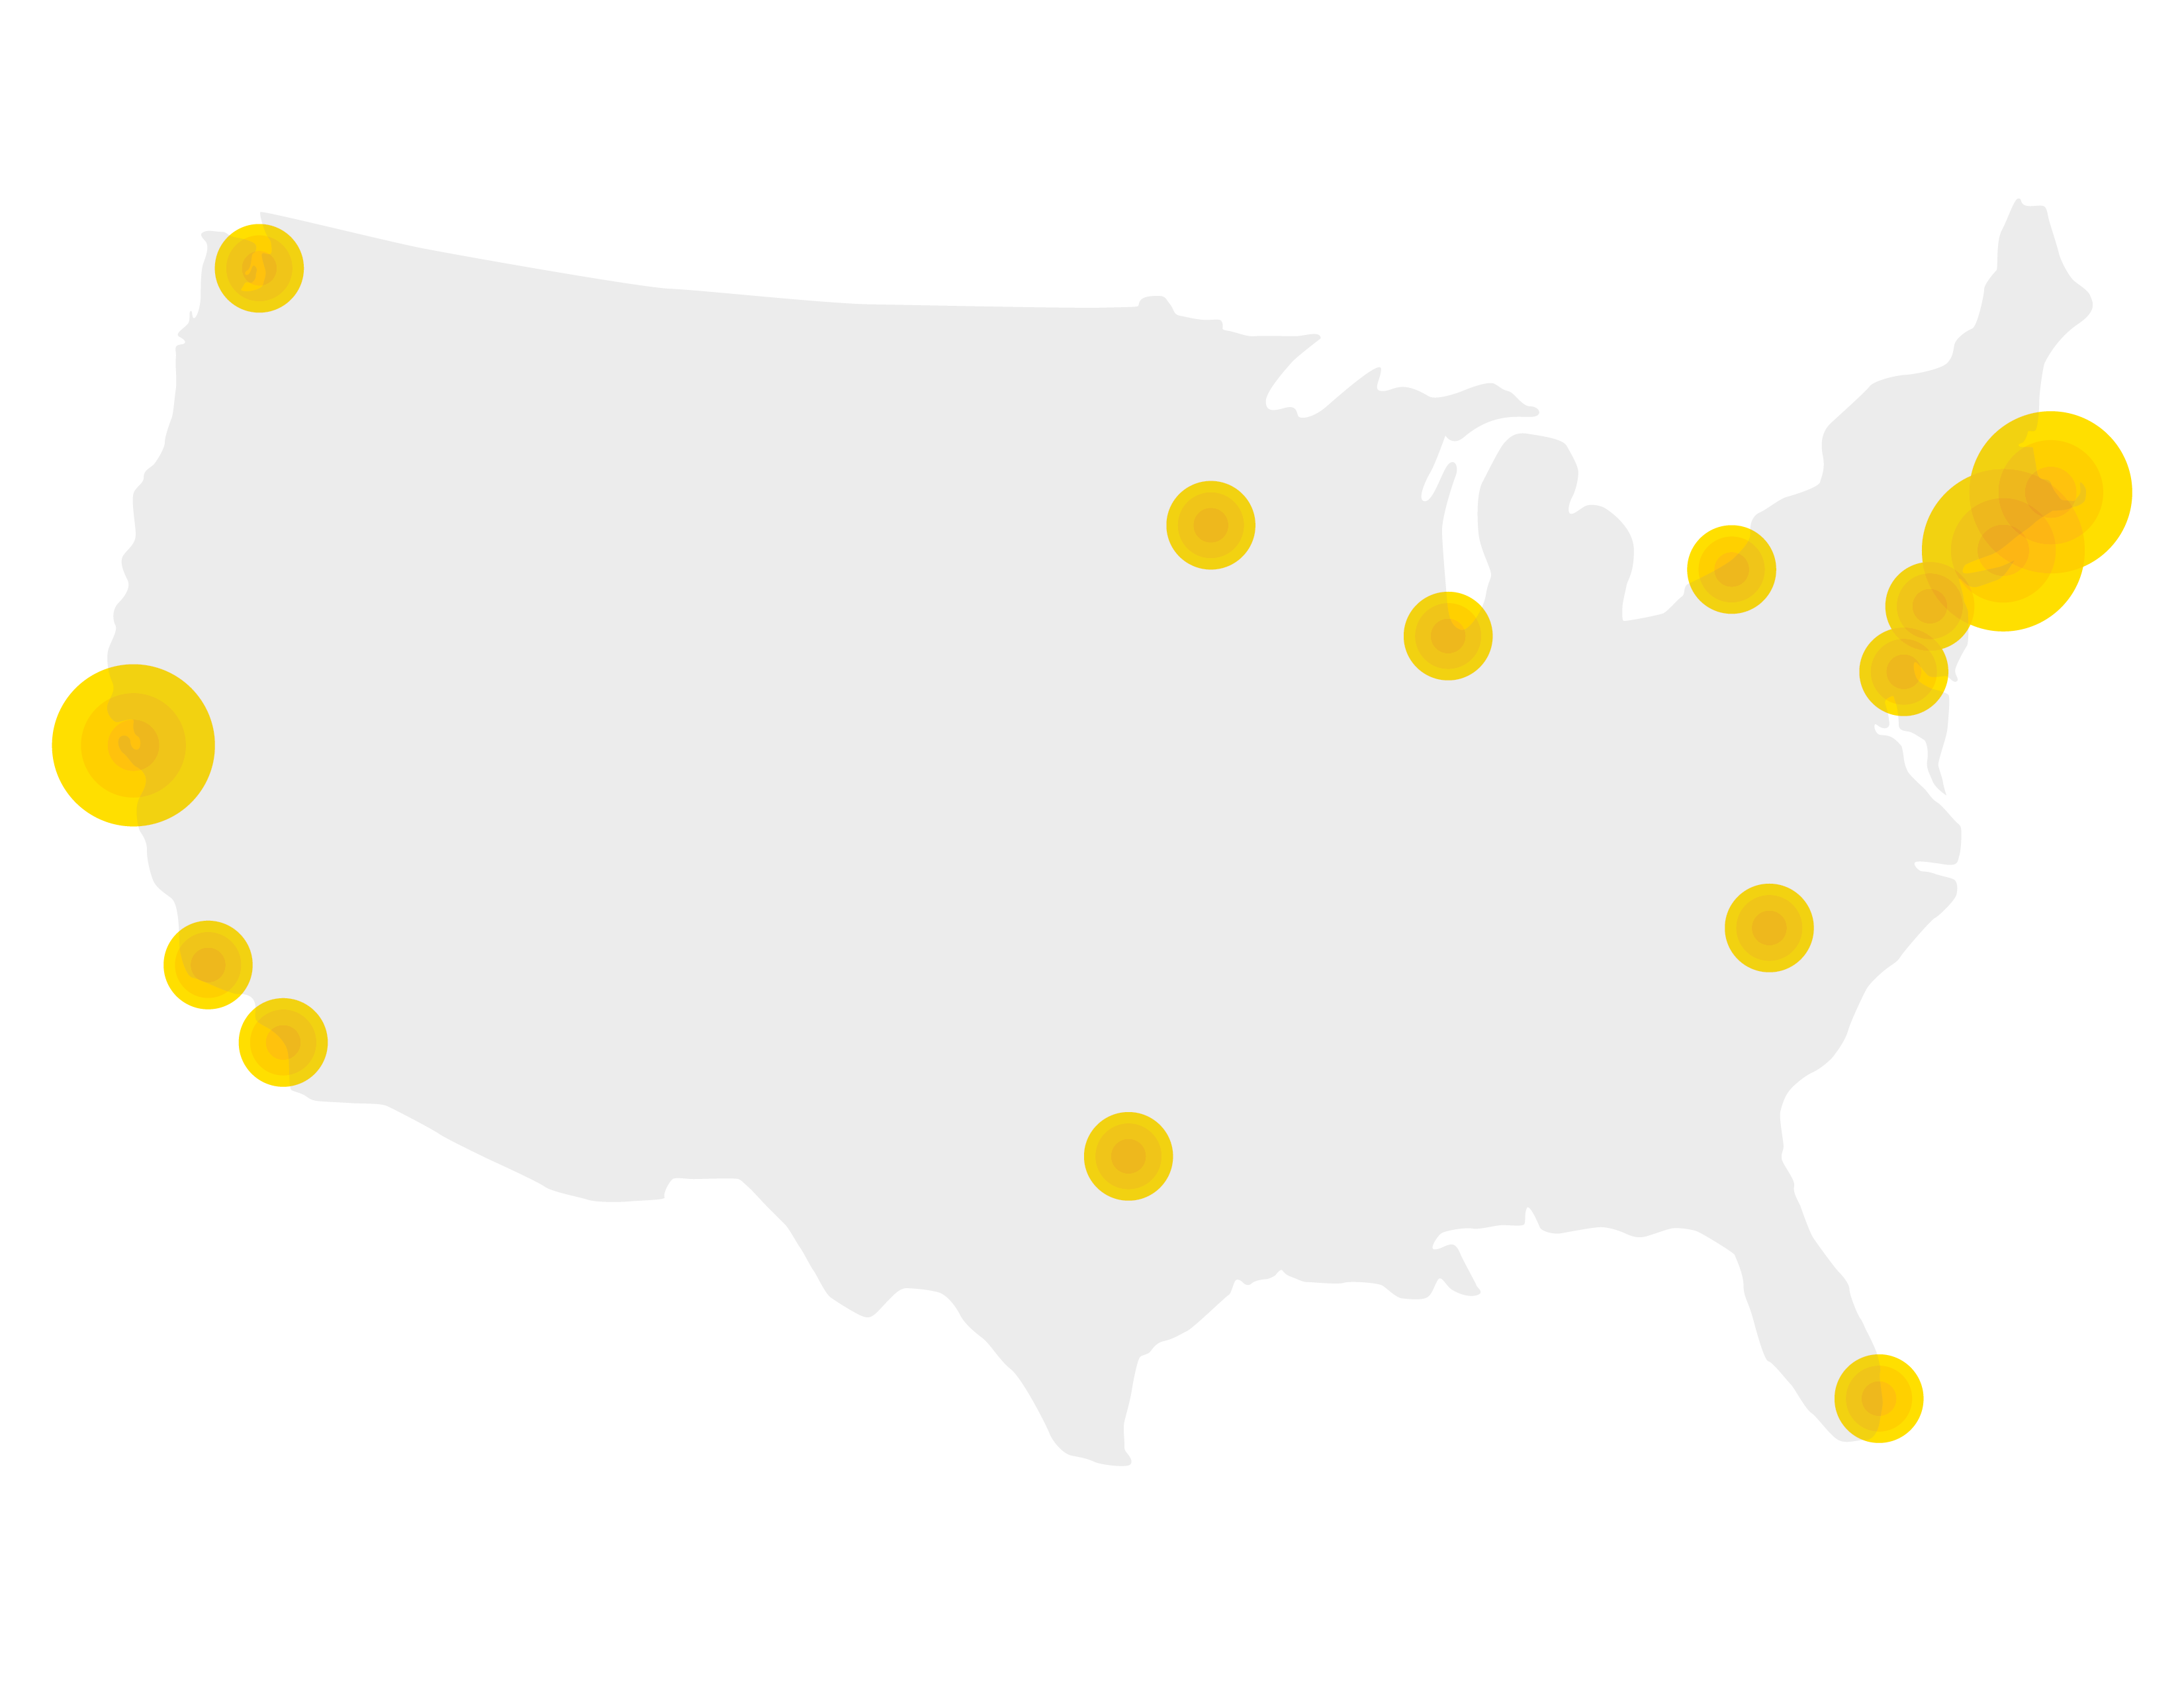 Map of United States BioTech areas